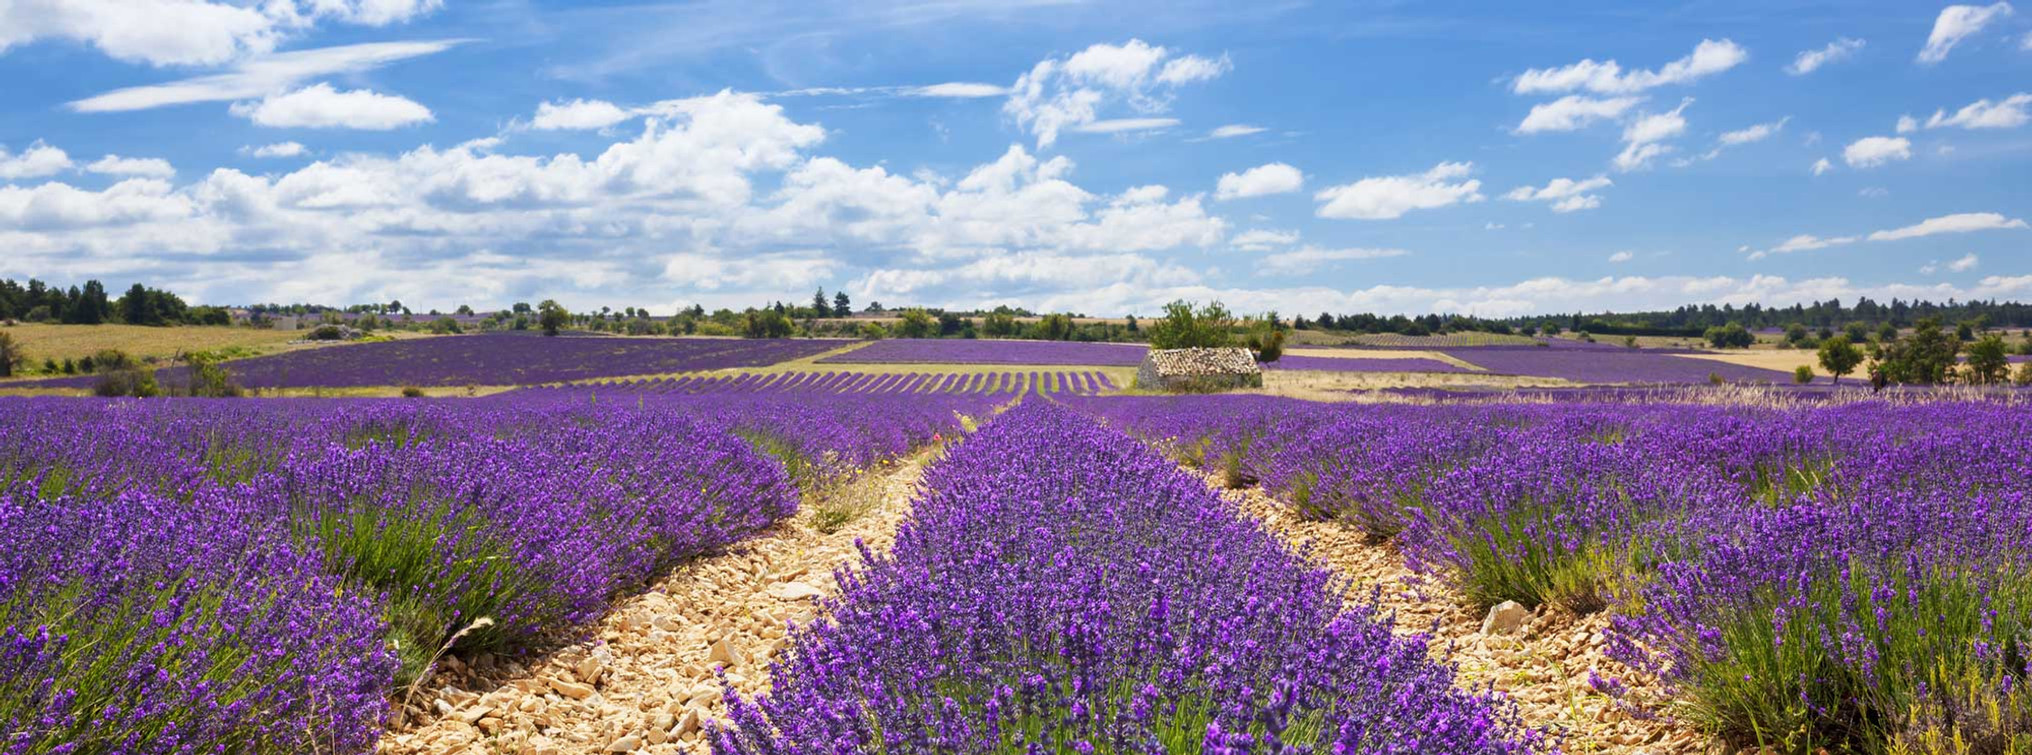 freepik-panoramic-view-lavender-field-cl